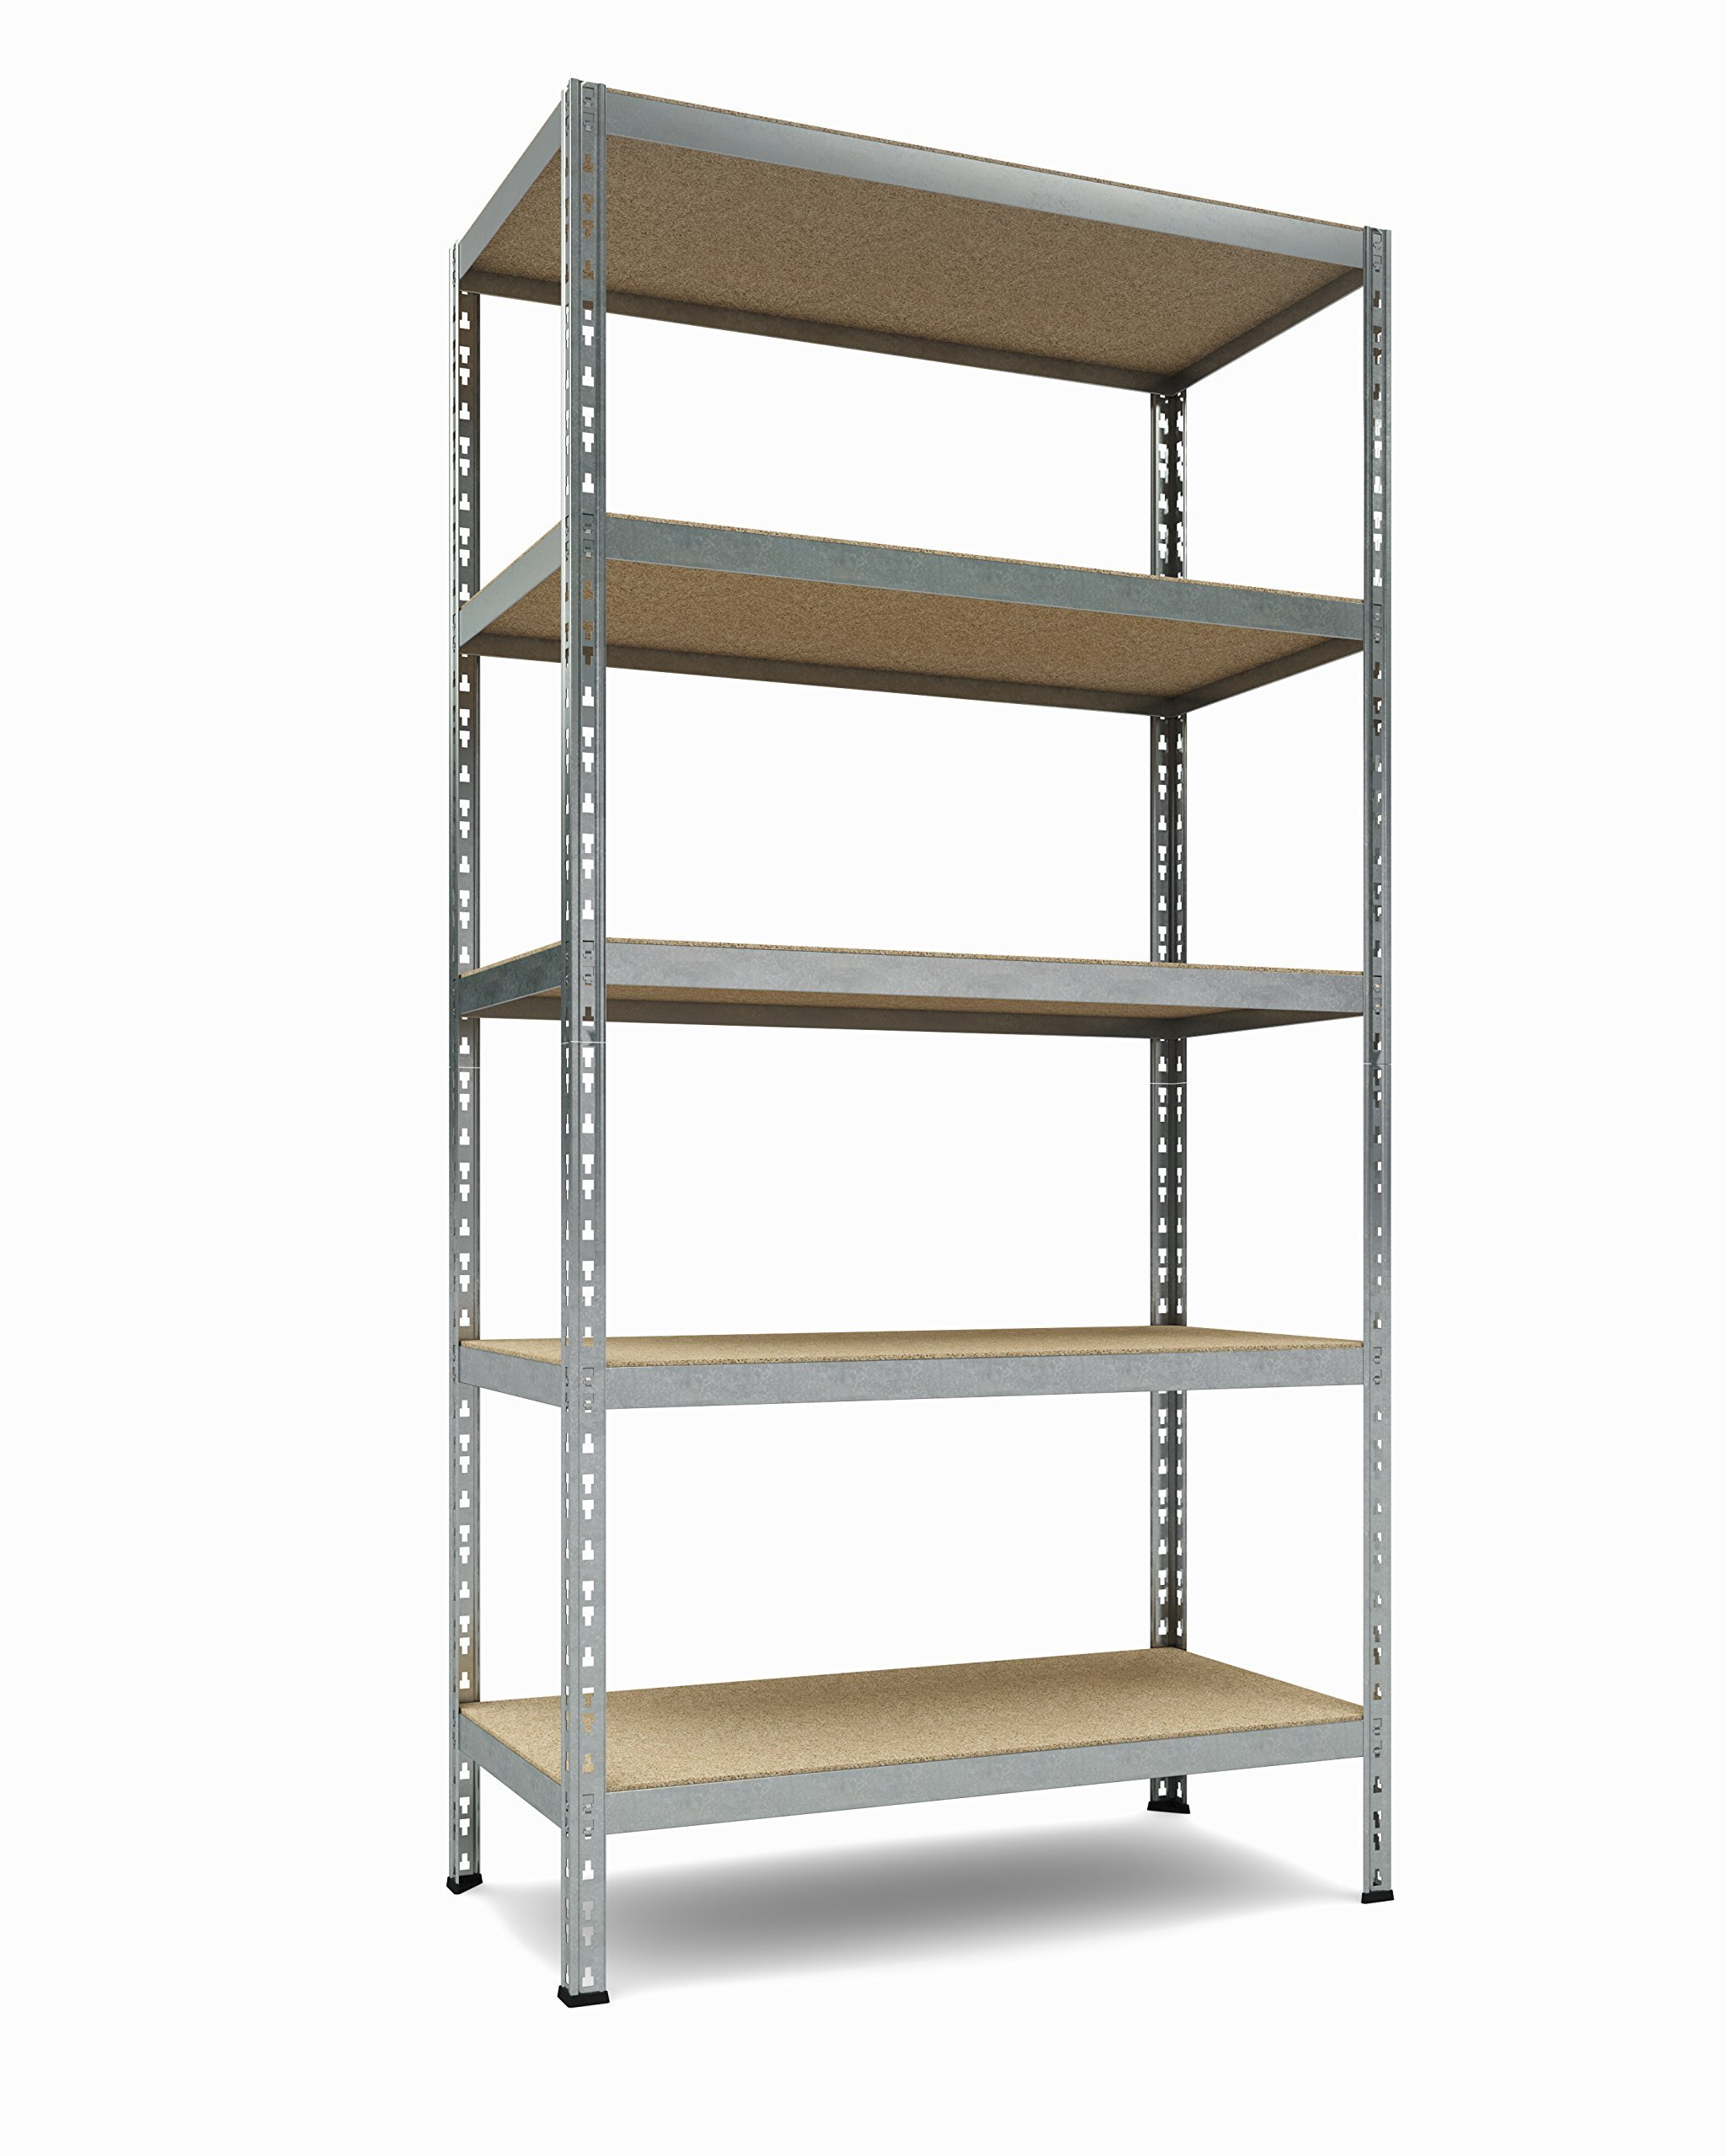 TKT Heavy Duty Shelving 5-Shelf Shelving Unit, 1.925lbs Capacity, 36'' Width x 72'' Height x 18'' Depth by TKT